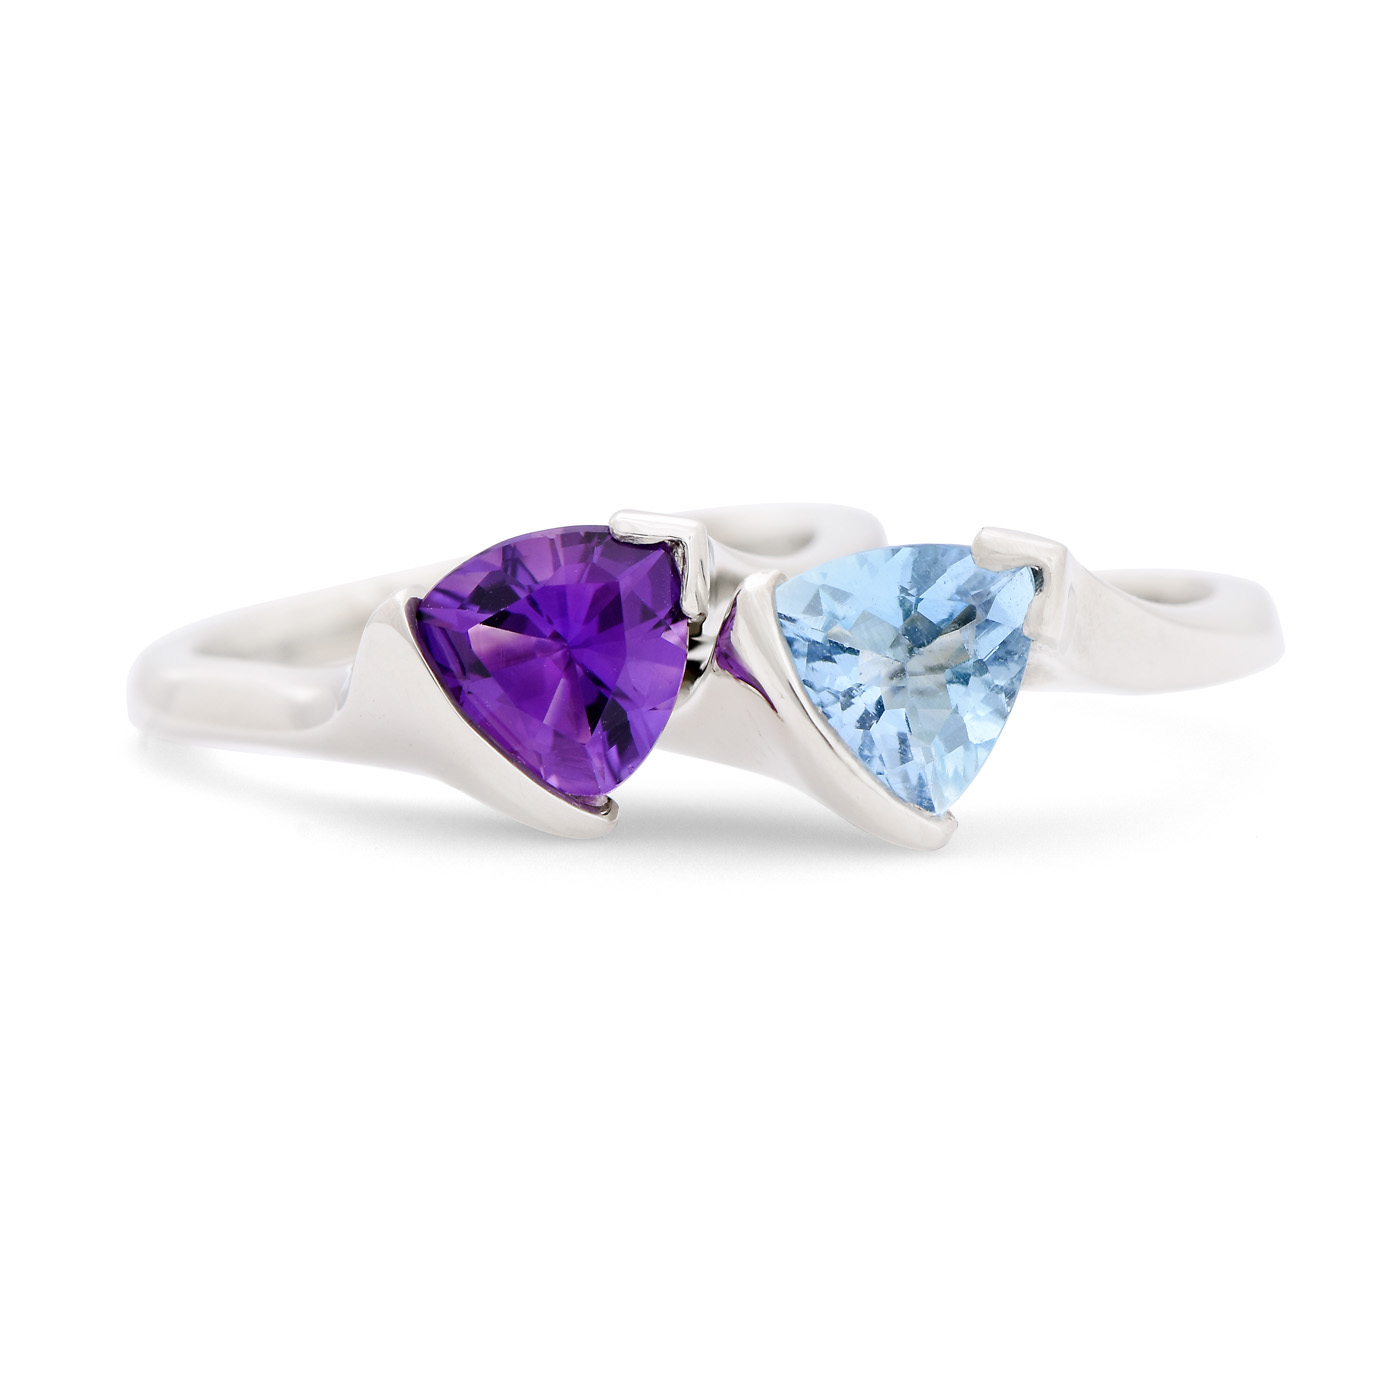 Aquamarine and Amethyst Trillion Cut Gemstone Ring